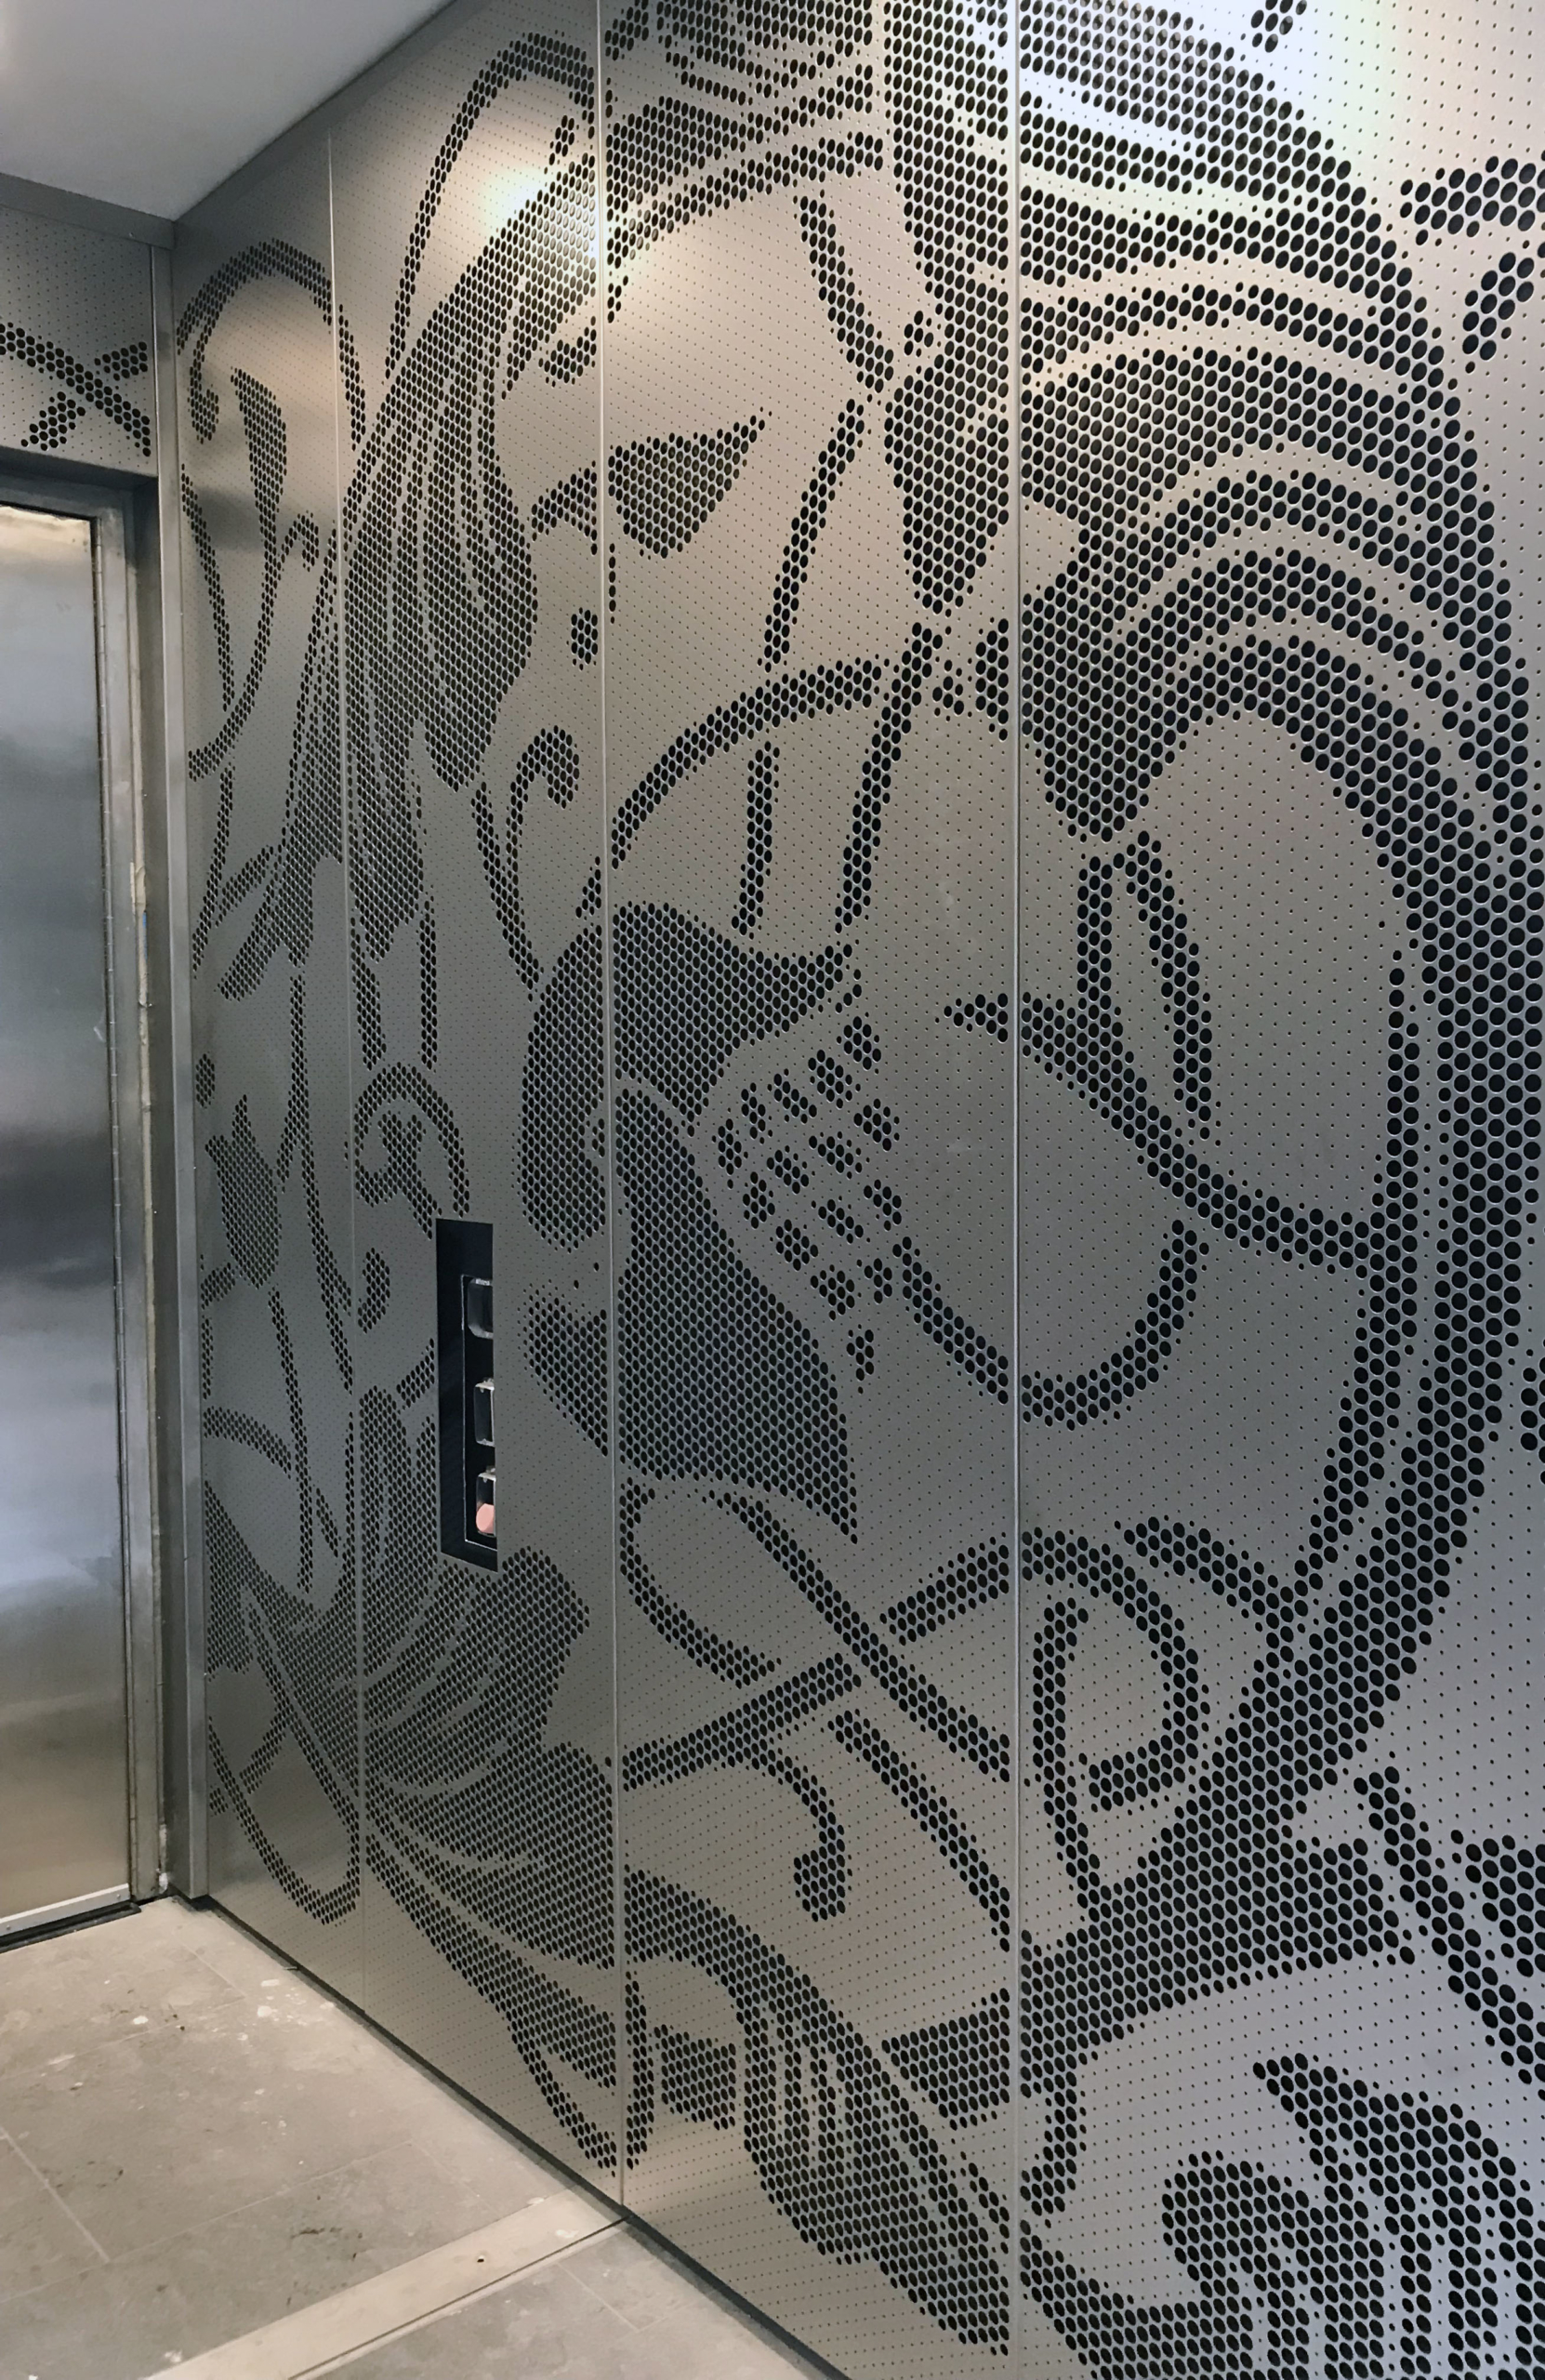 Installation of an ImageWall custom perforated panel system, a Zahner patented process.